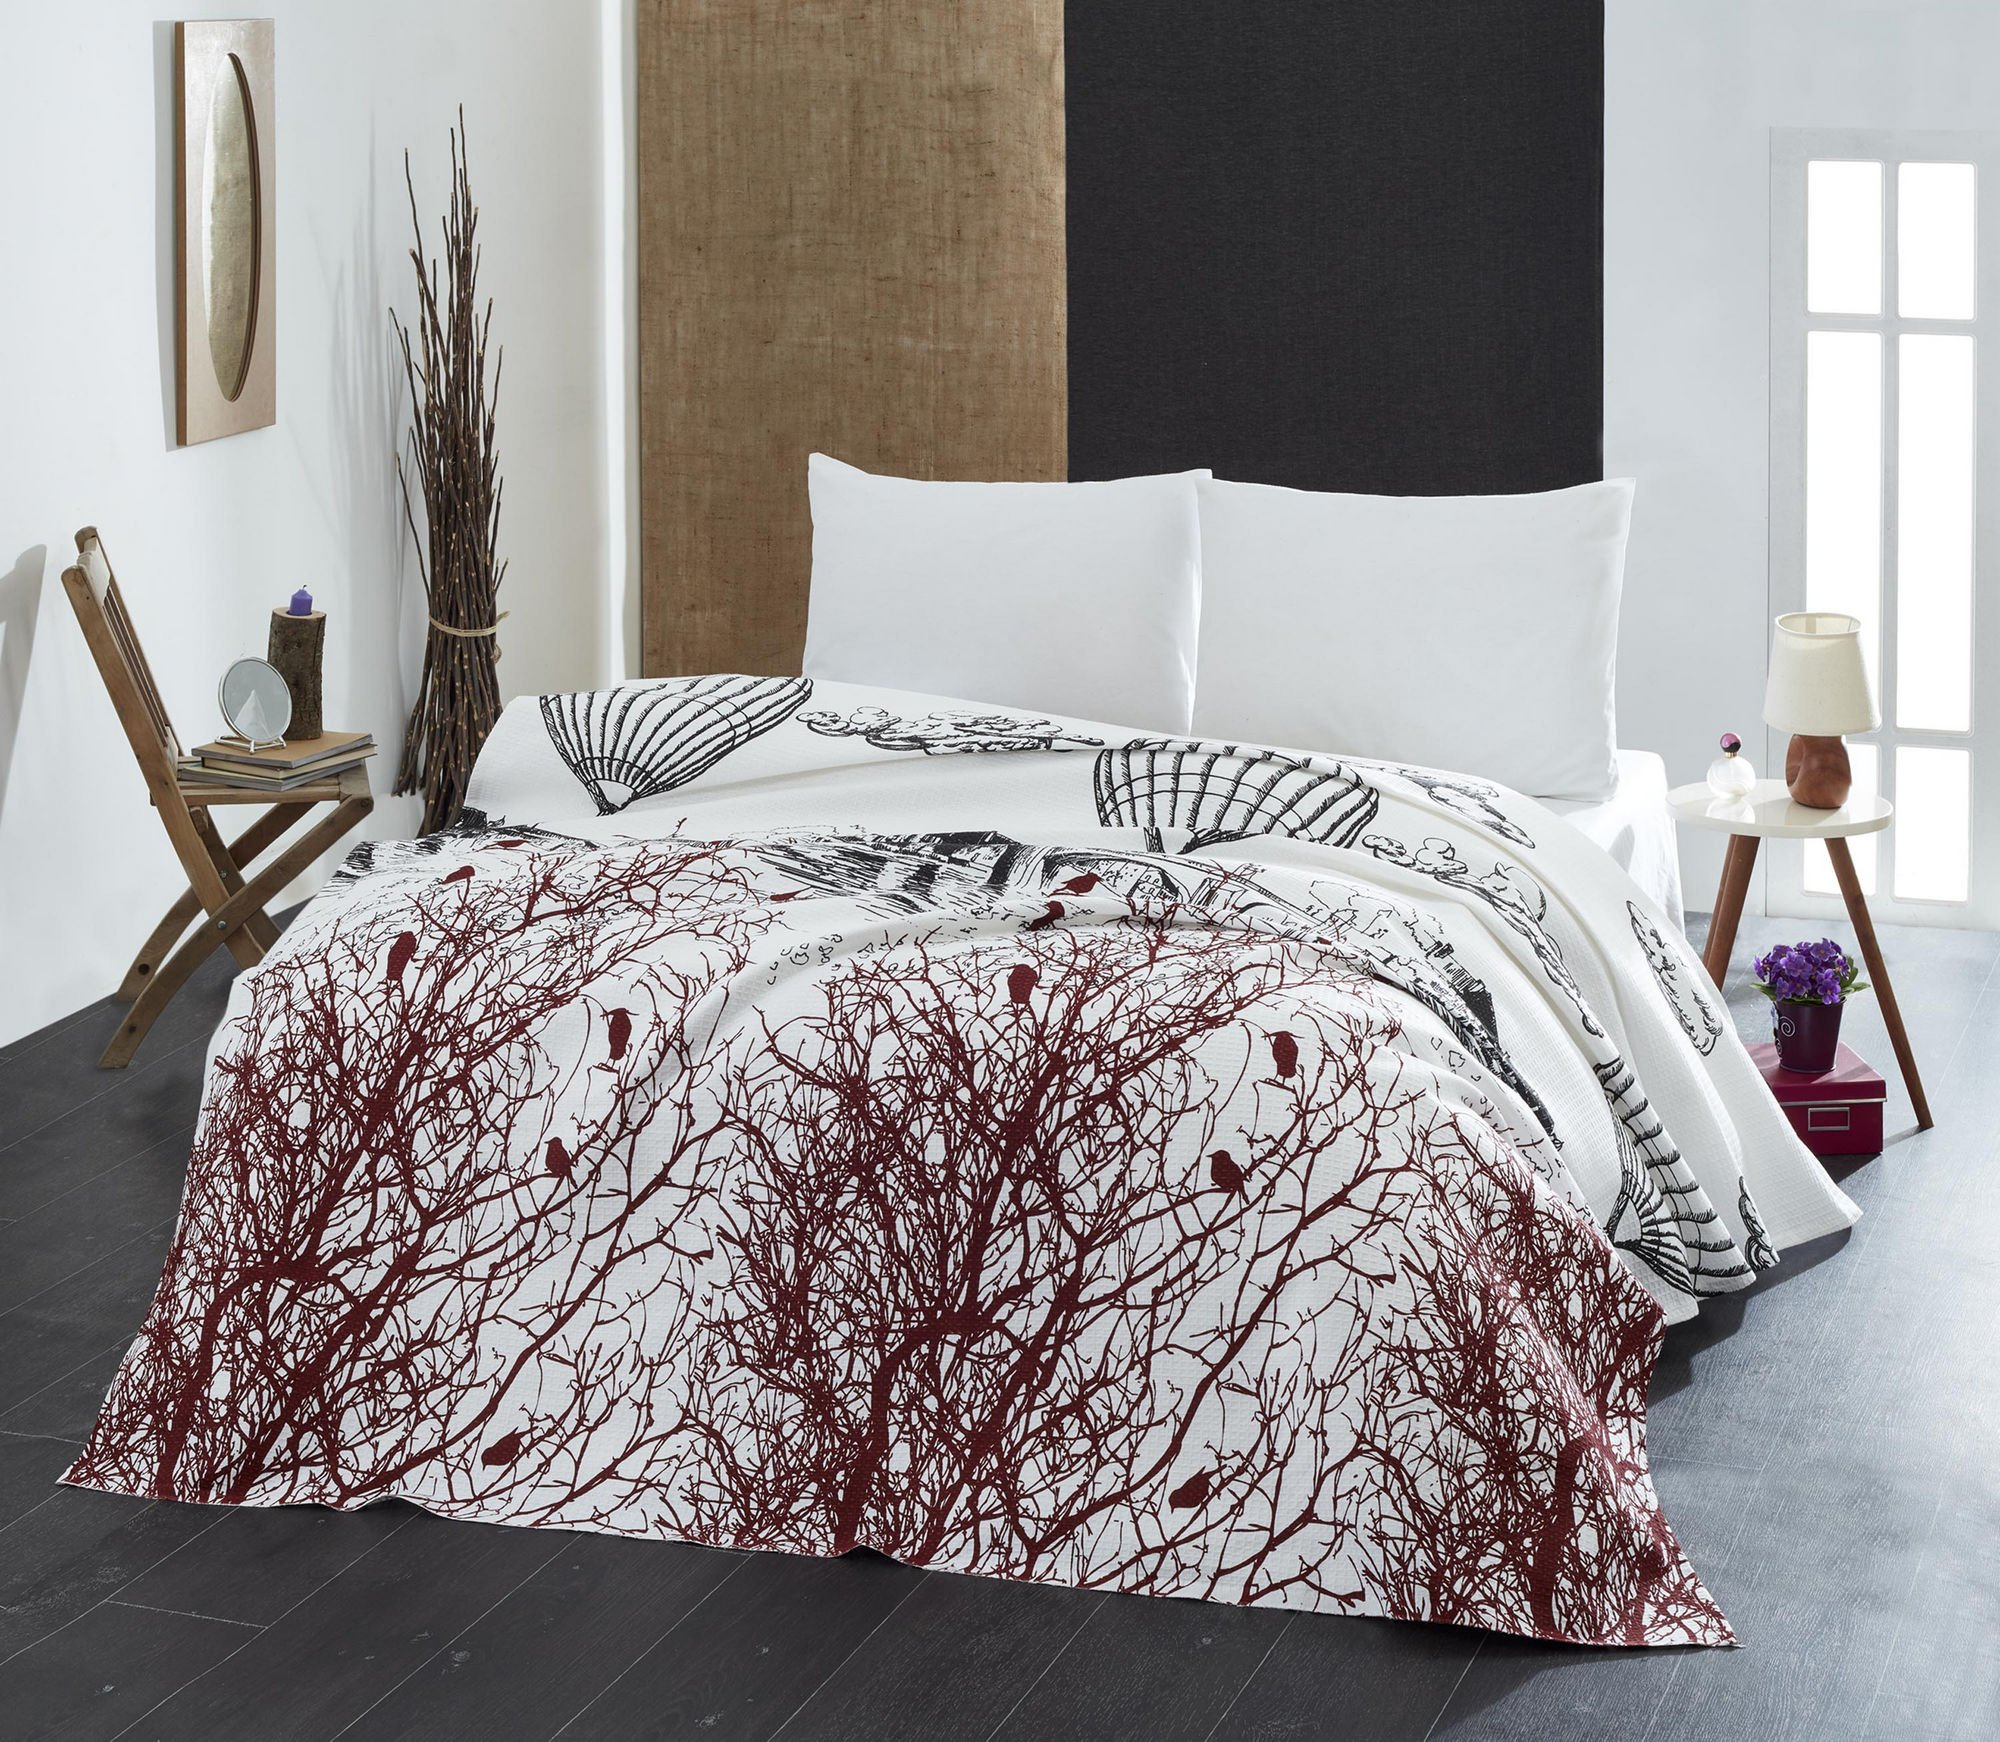 LaModaHome Luxury Soft Colored Bedroom Bedding 100% Cotton Single Coverlet (Pique) Thin Coverlet Summer / / Single